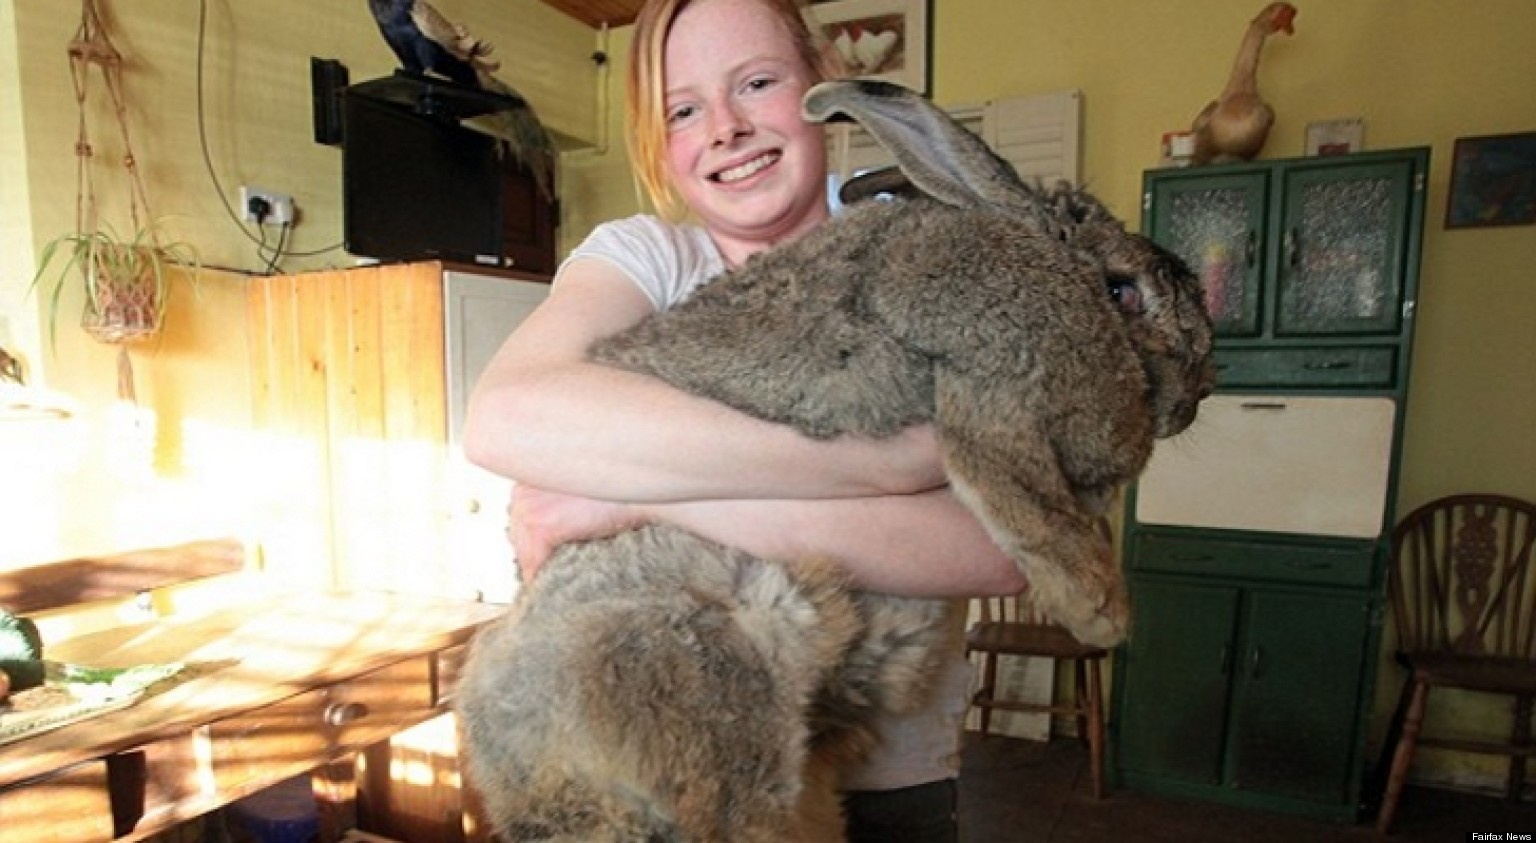 ralph worlds largest bunny rabbit weighs 55 pounds and eats 90 of food a week photo huffpost